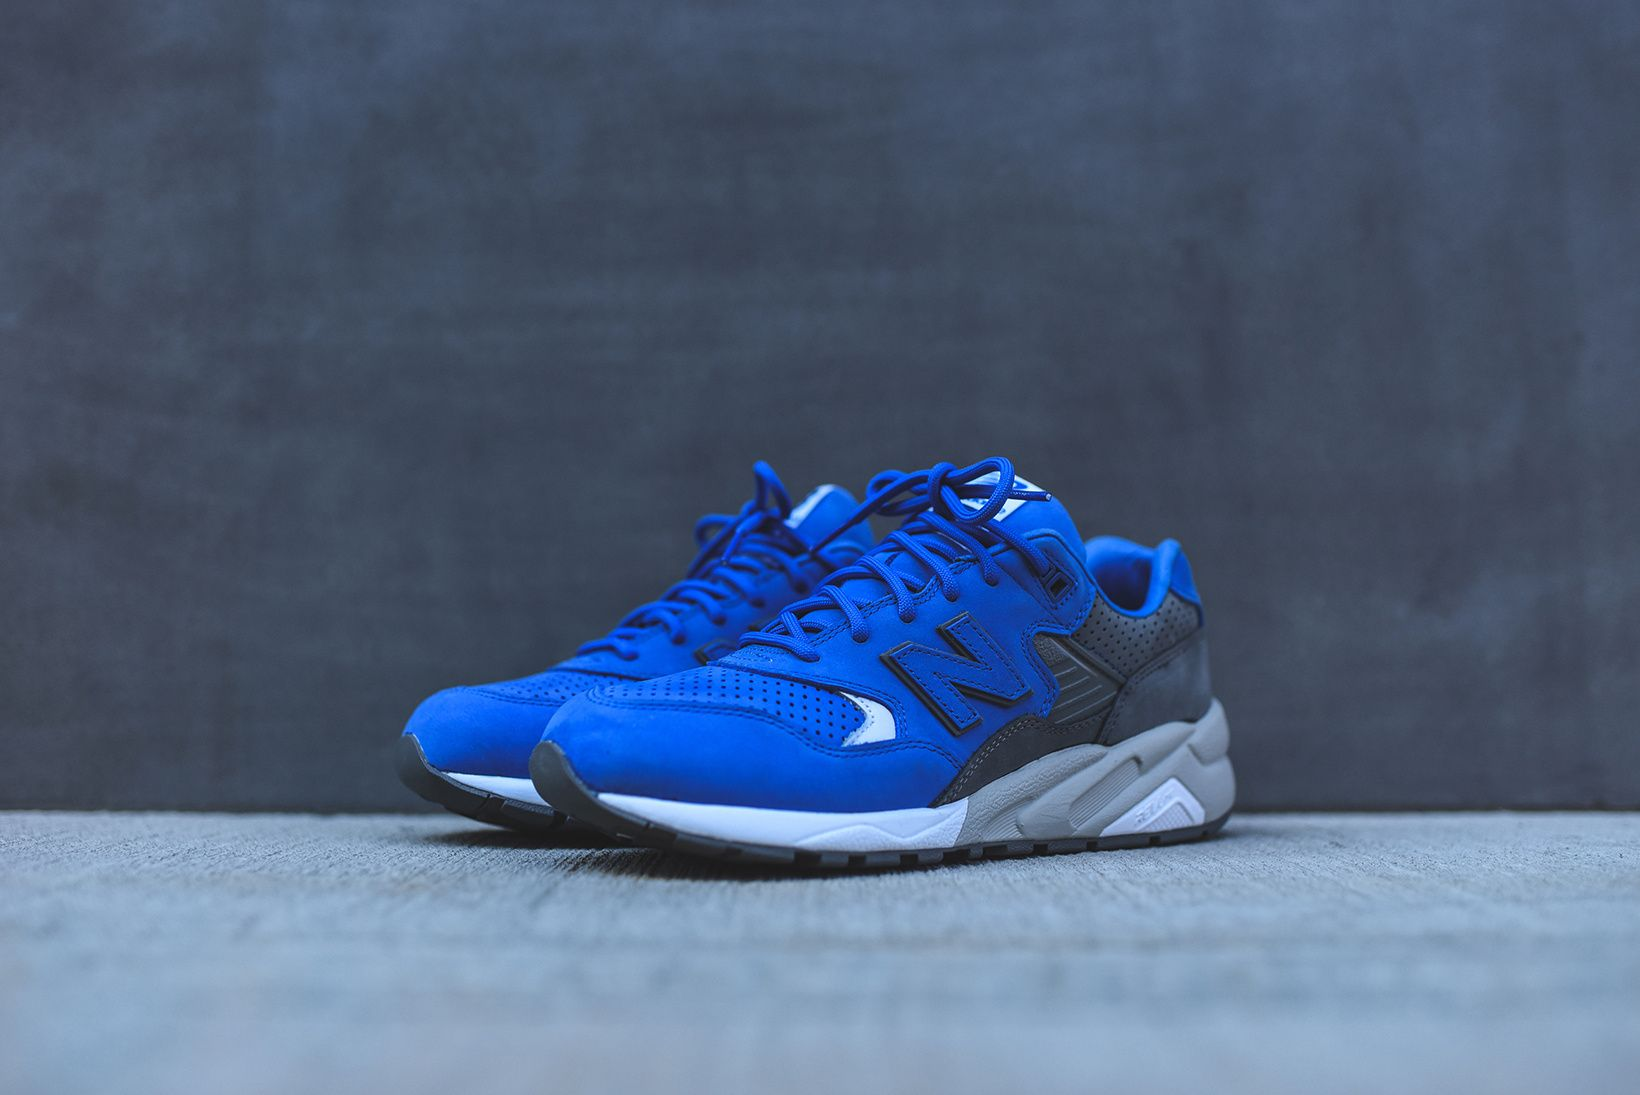 reputable site 93348 581cd A Closer Look at the colette x New Balance 2016 Spring Summer MRT580 Pack